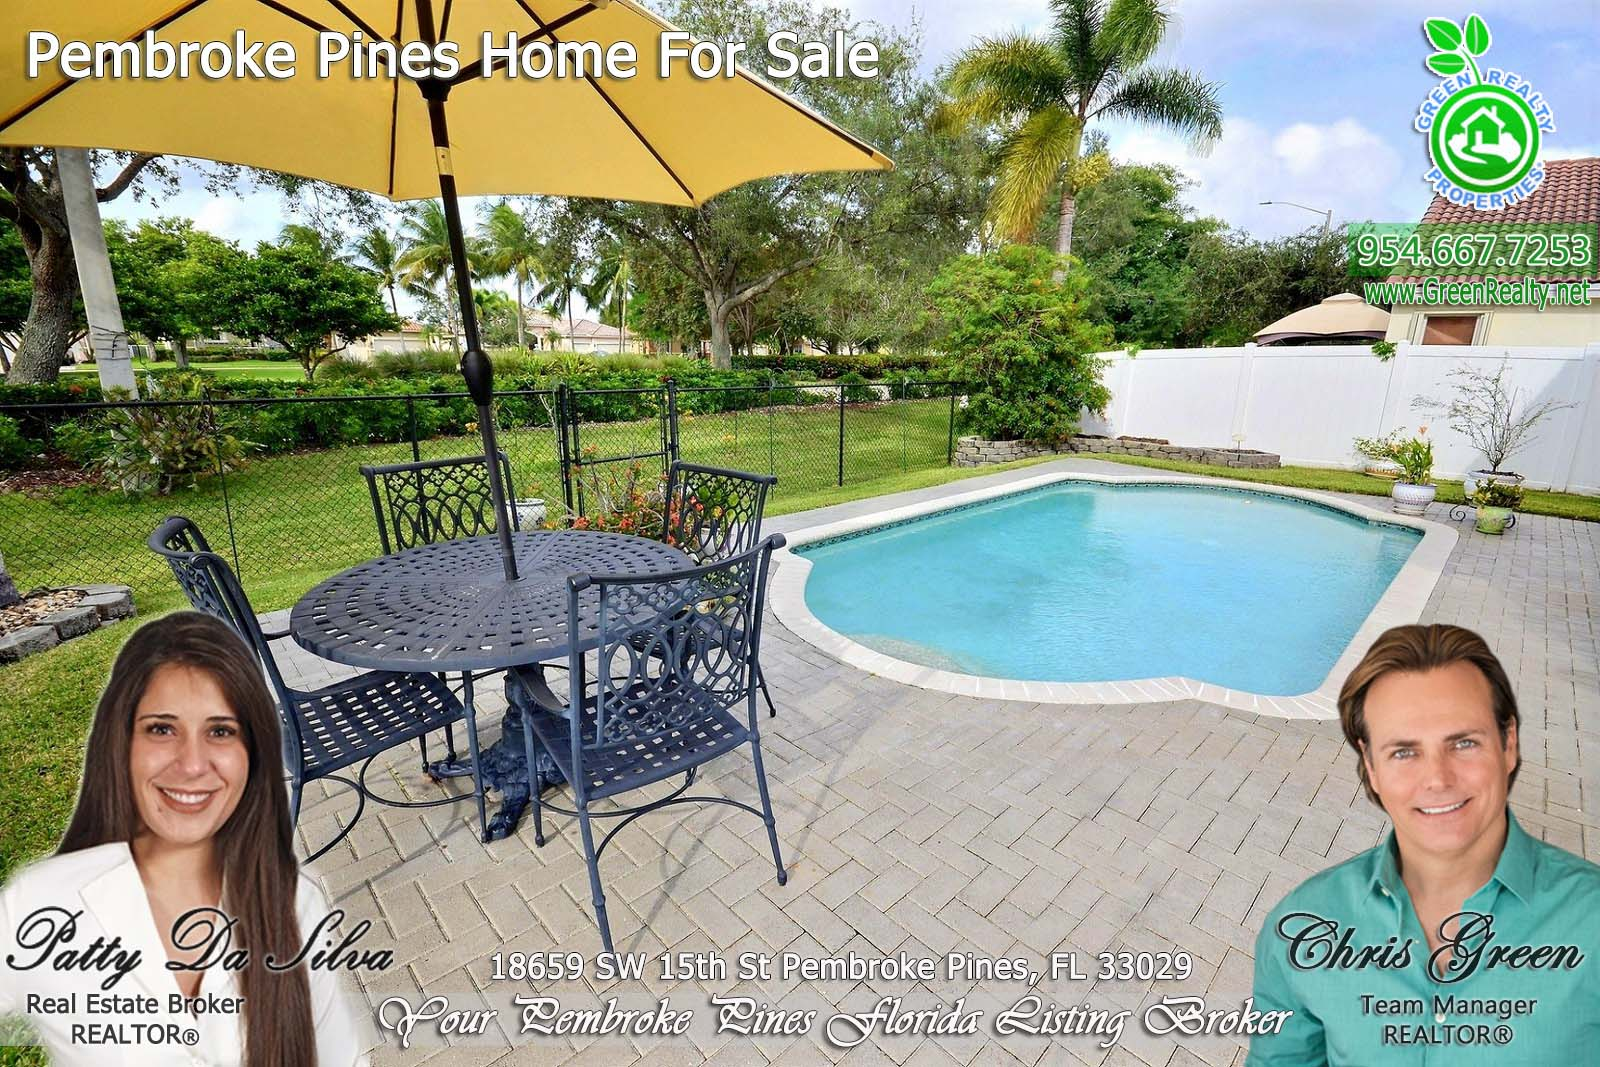 52 Pembroke Pines Real Estate (4)